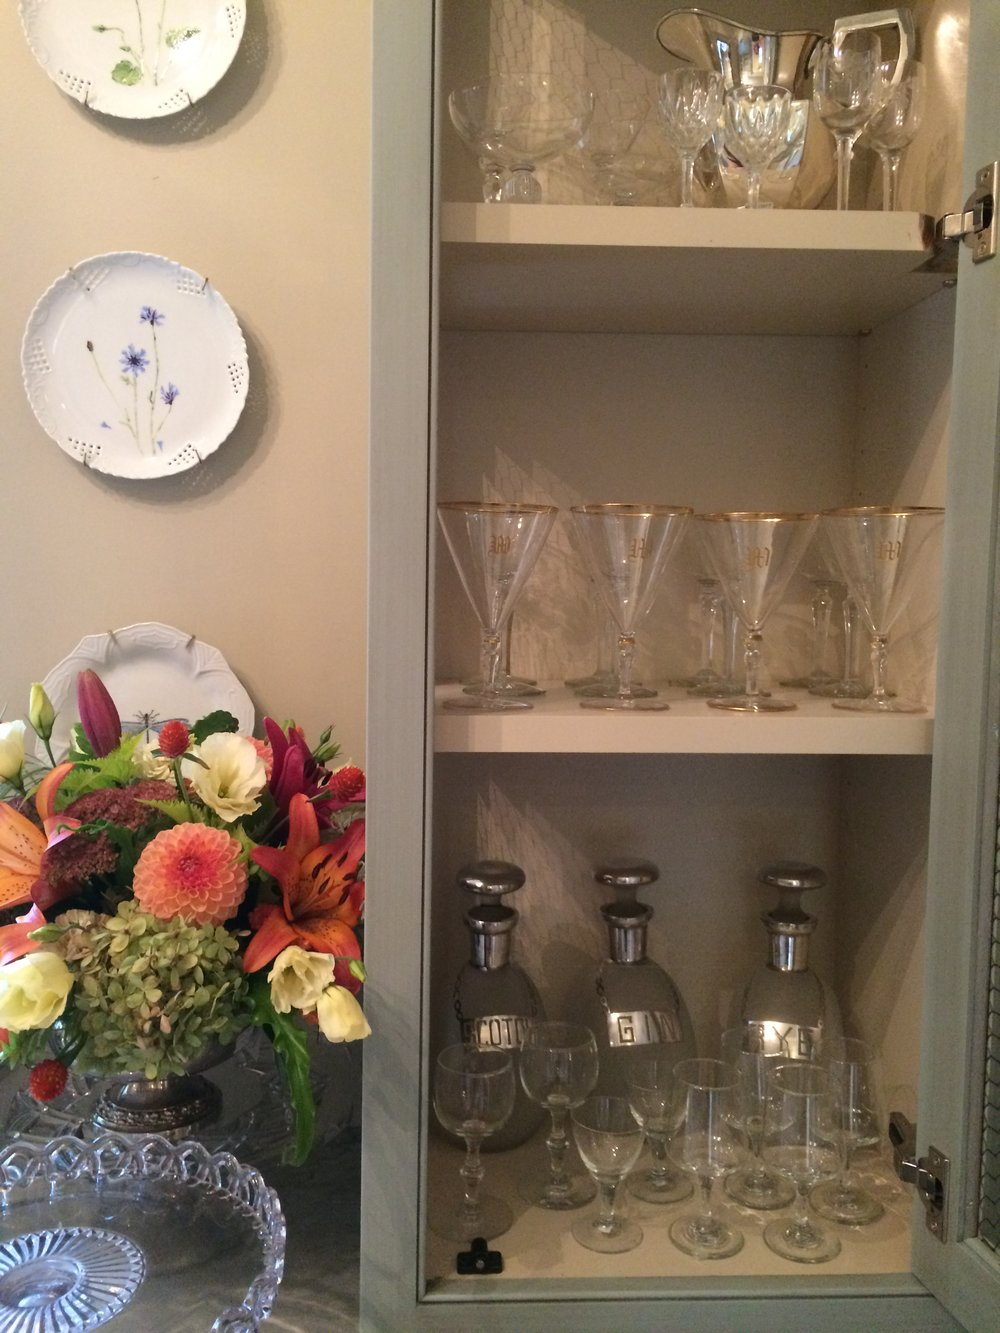 Stem and bar ware in cabinets and flowers in a vintage silver plate flower arrangers.